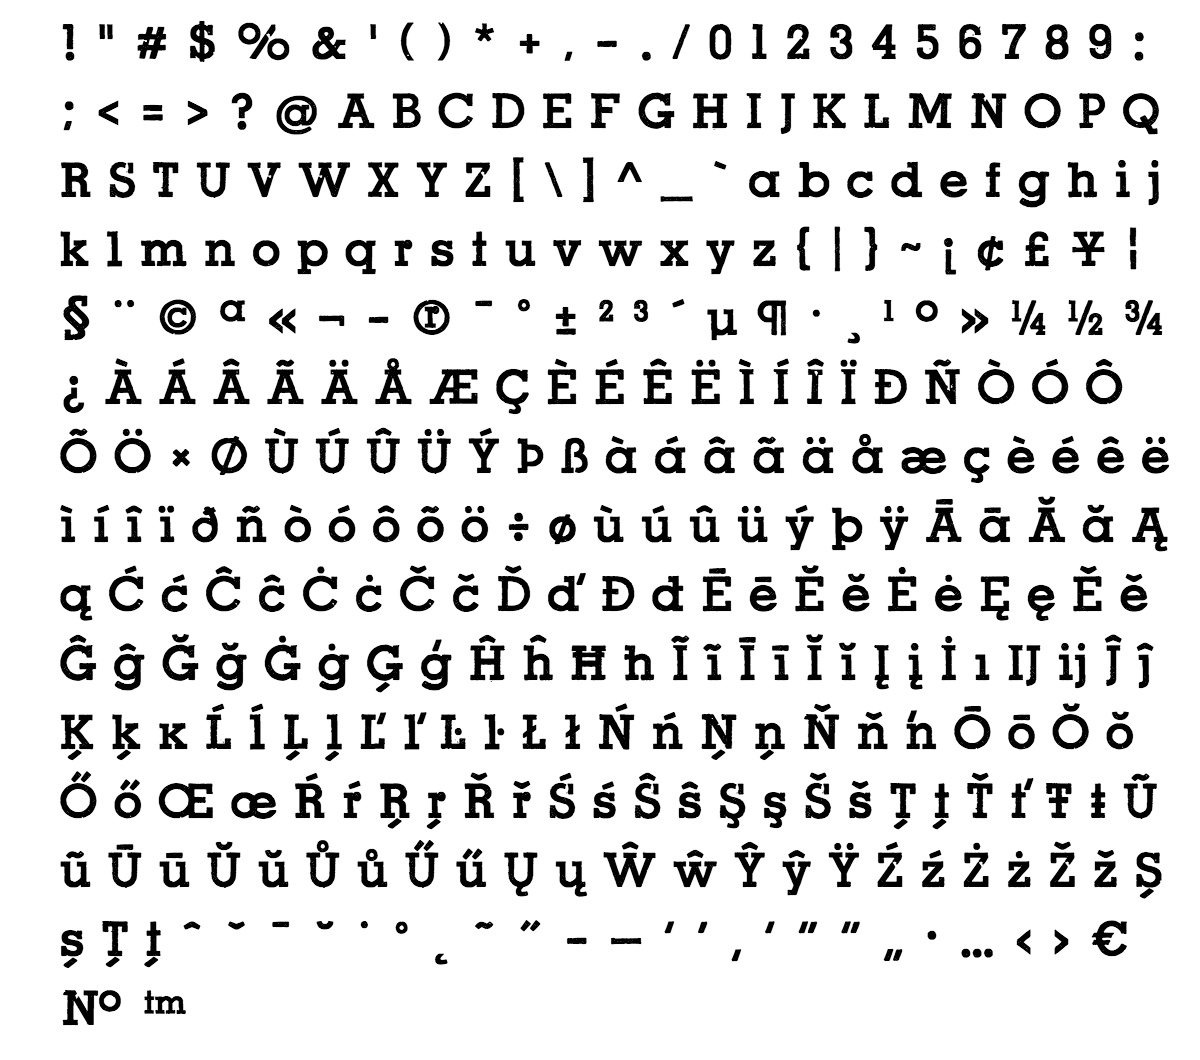 revers font - complete character list